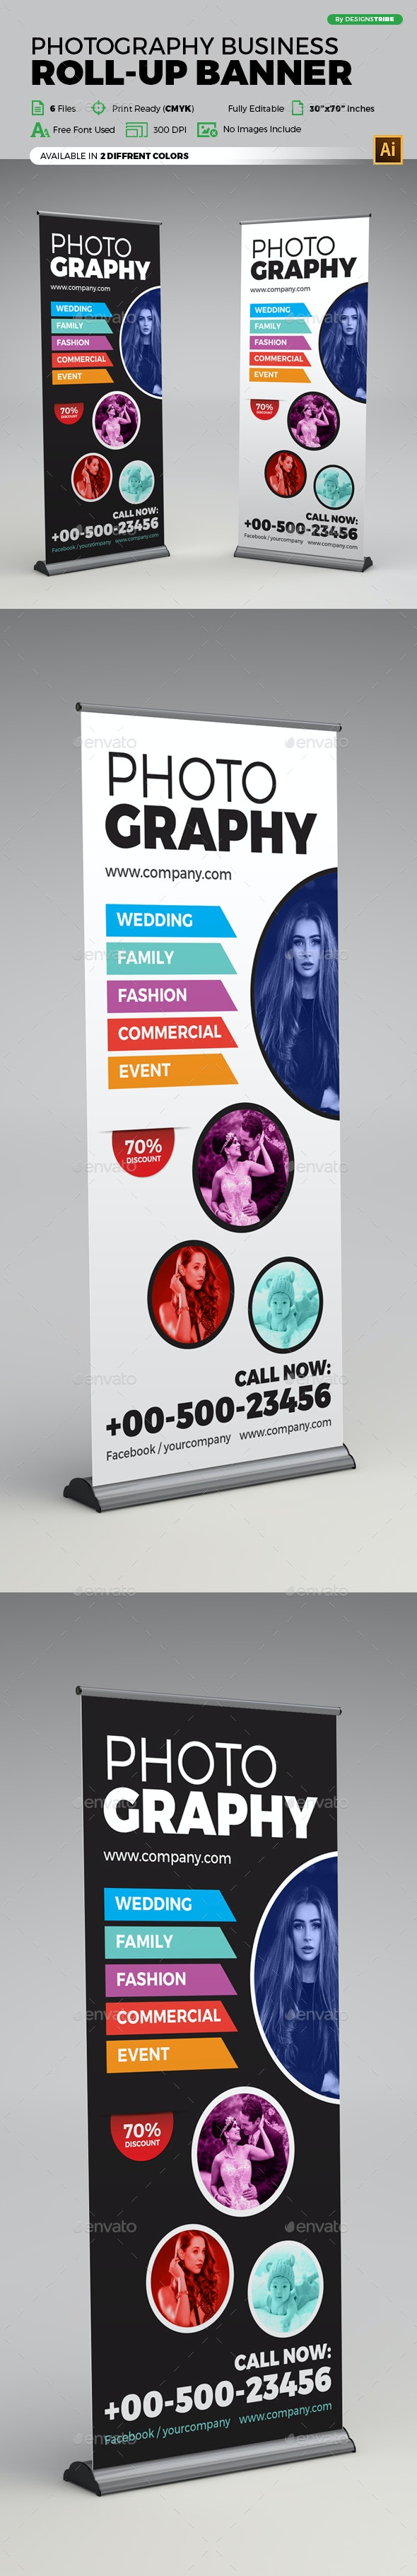 Photography X Banner - Signage Print Templates